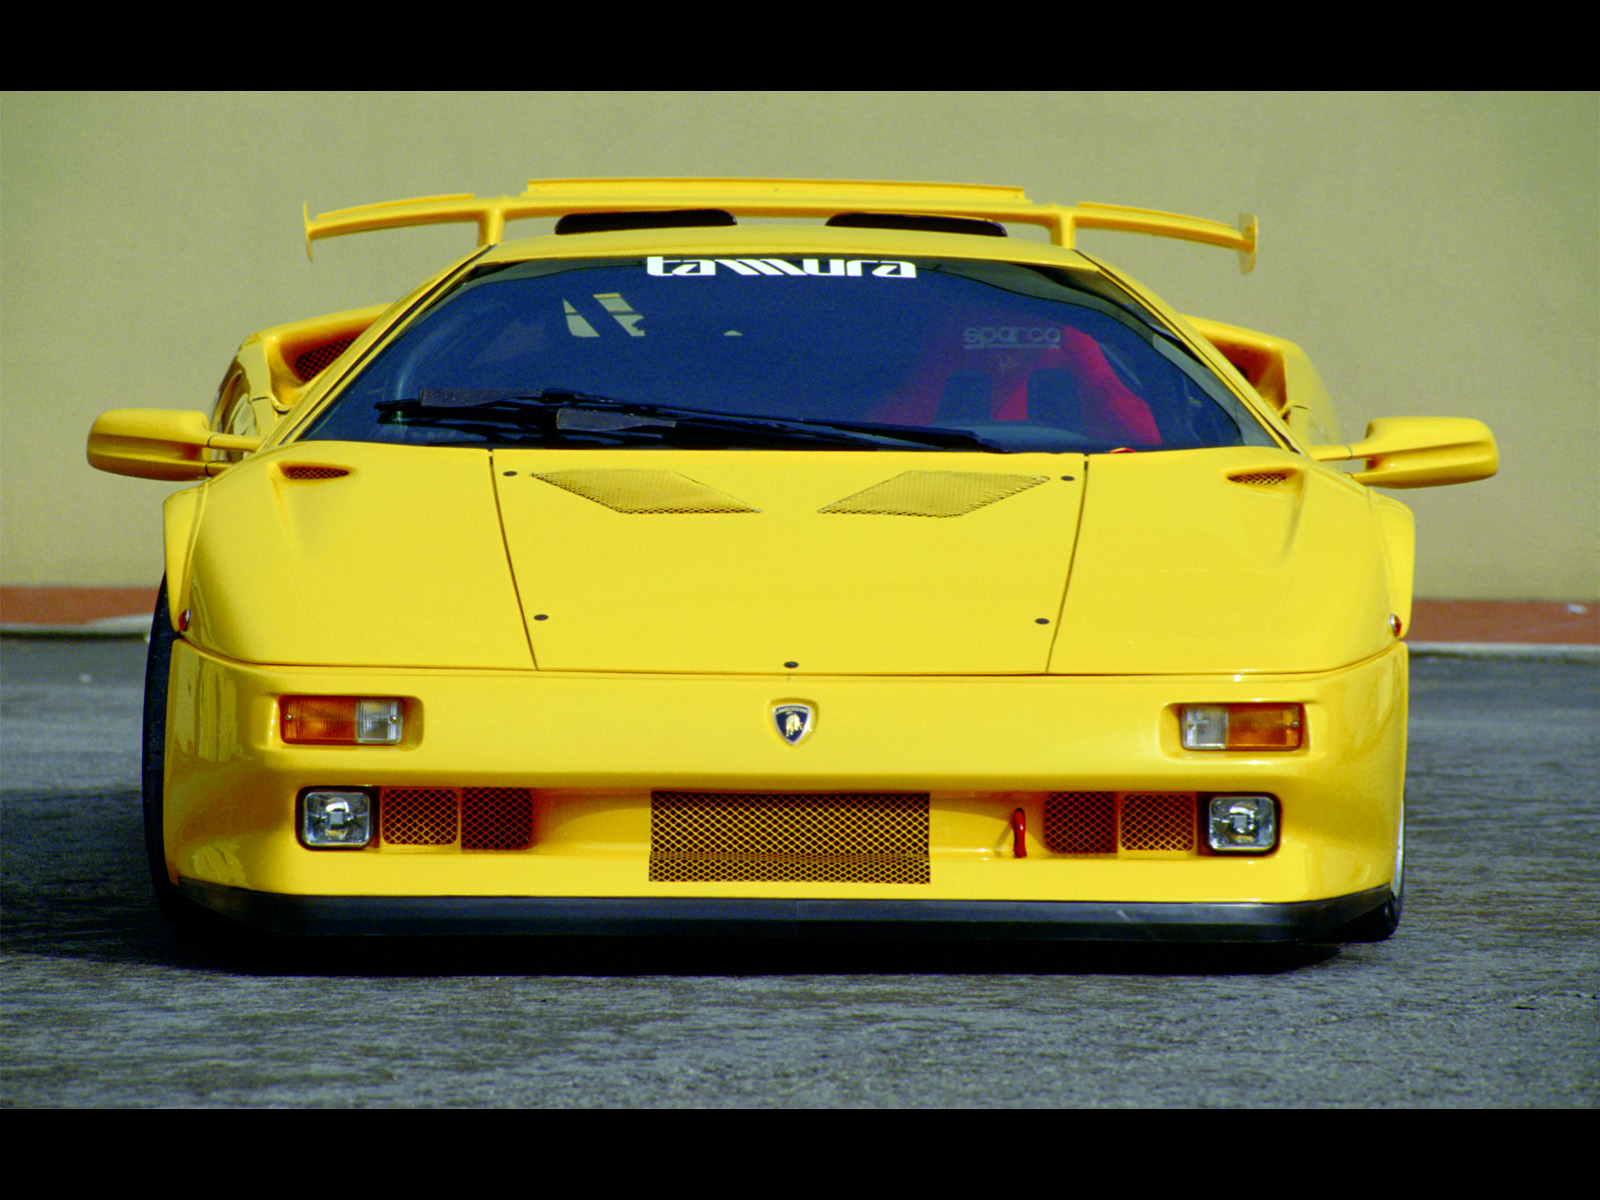 Hd Car Wallpapers Lamborghini Diablo